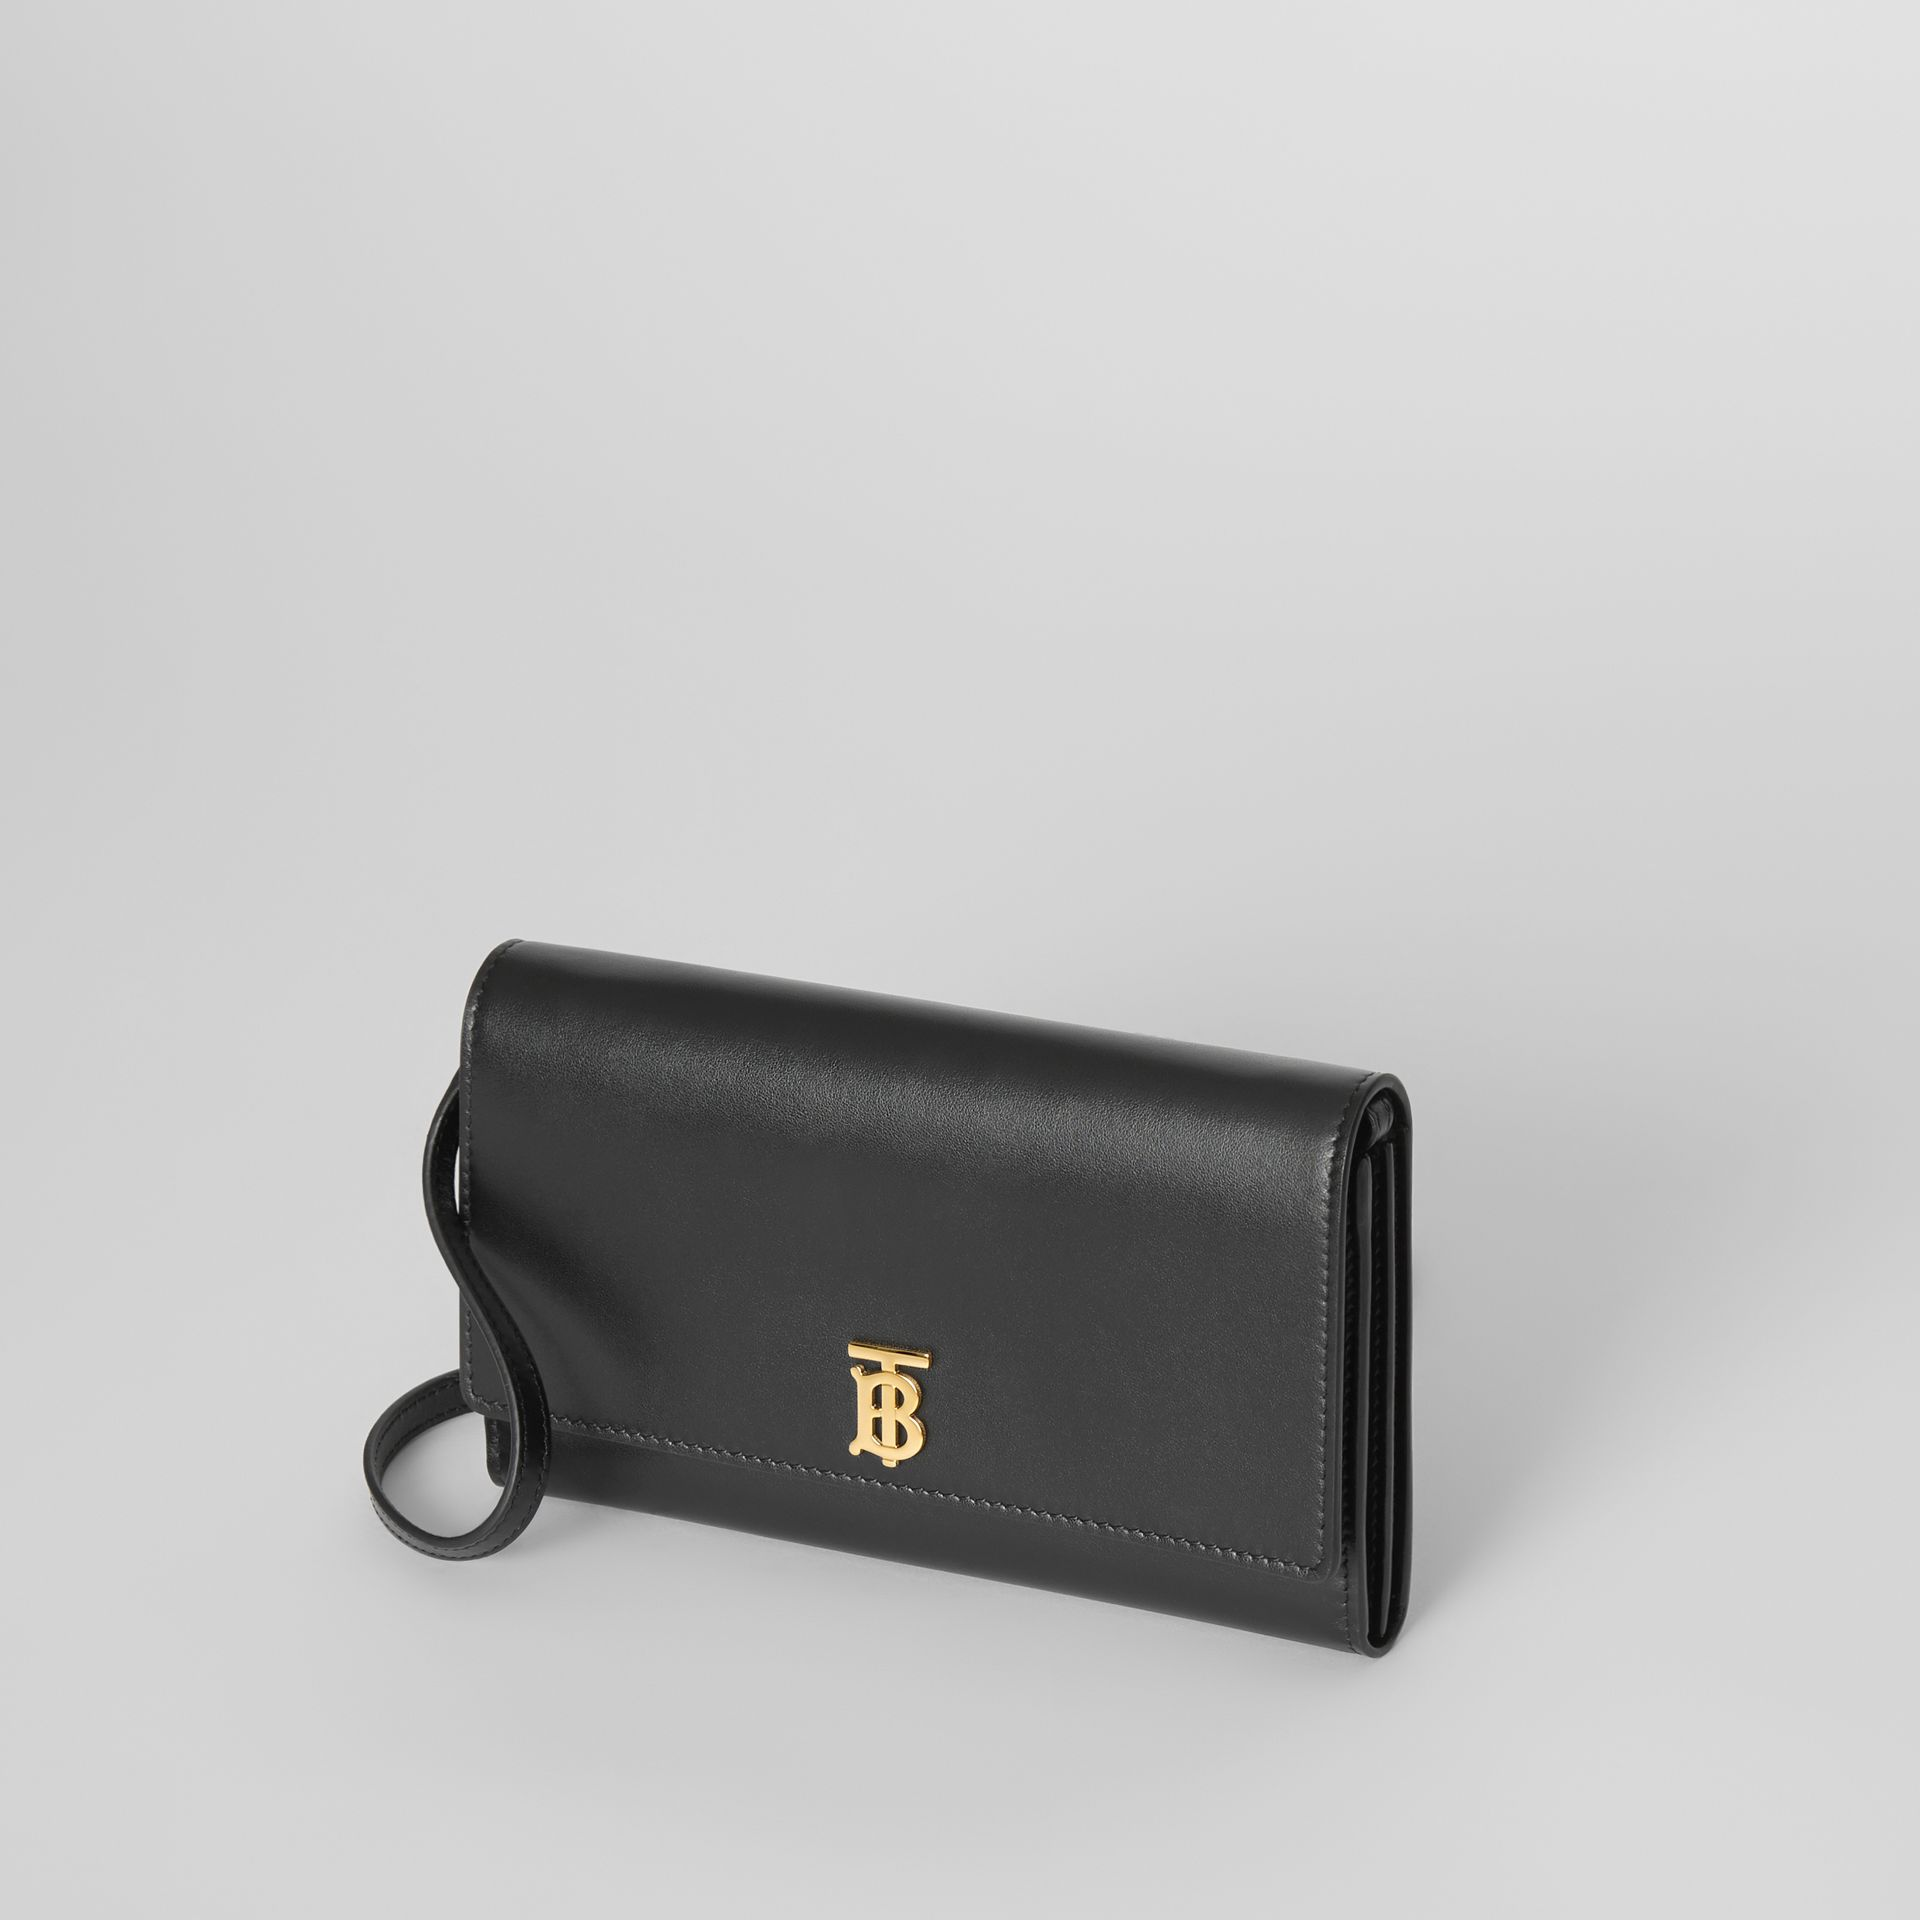 Monogram Motif Leather Wallet with Detachable Strap in Black - Women | Burberry Australia - gallery image 3